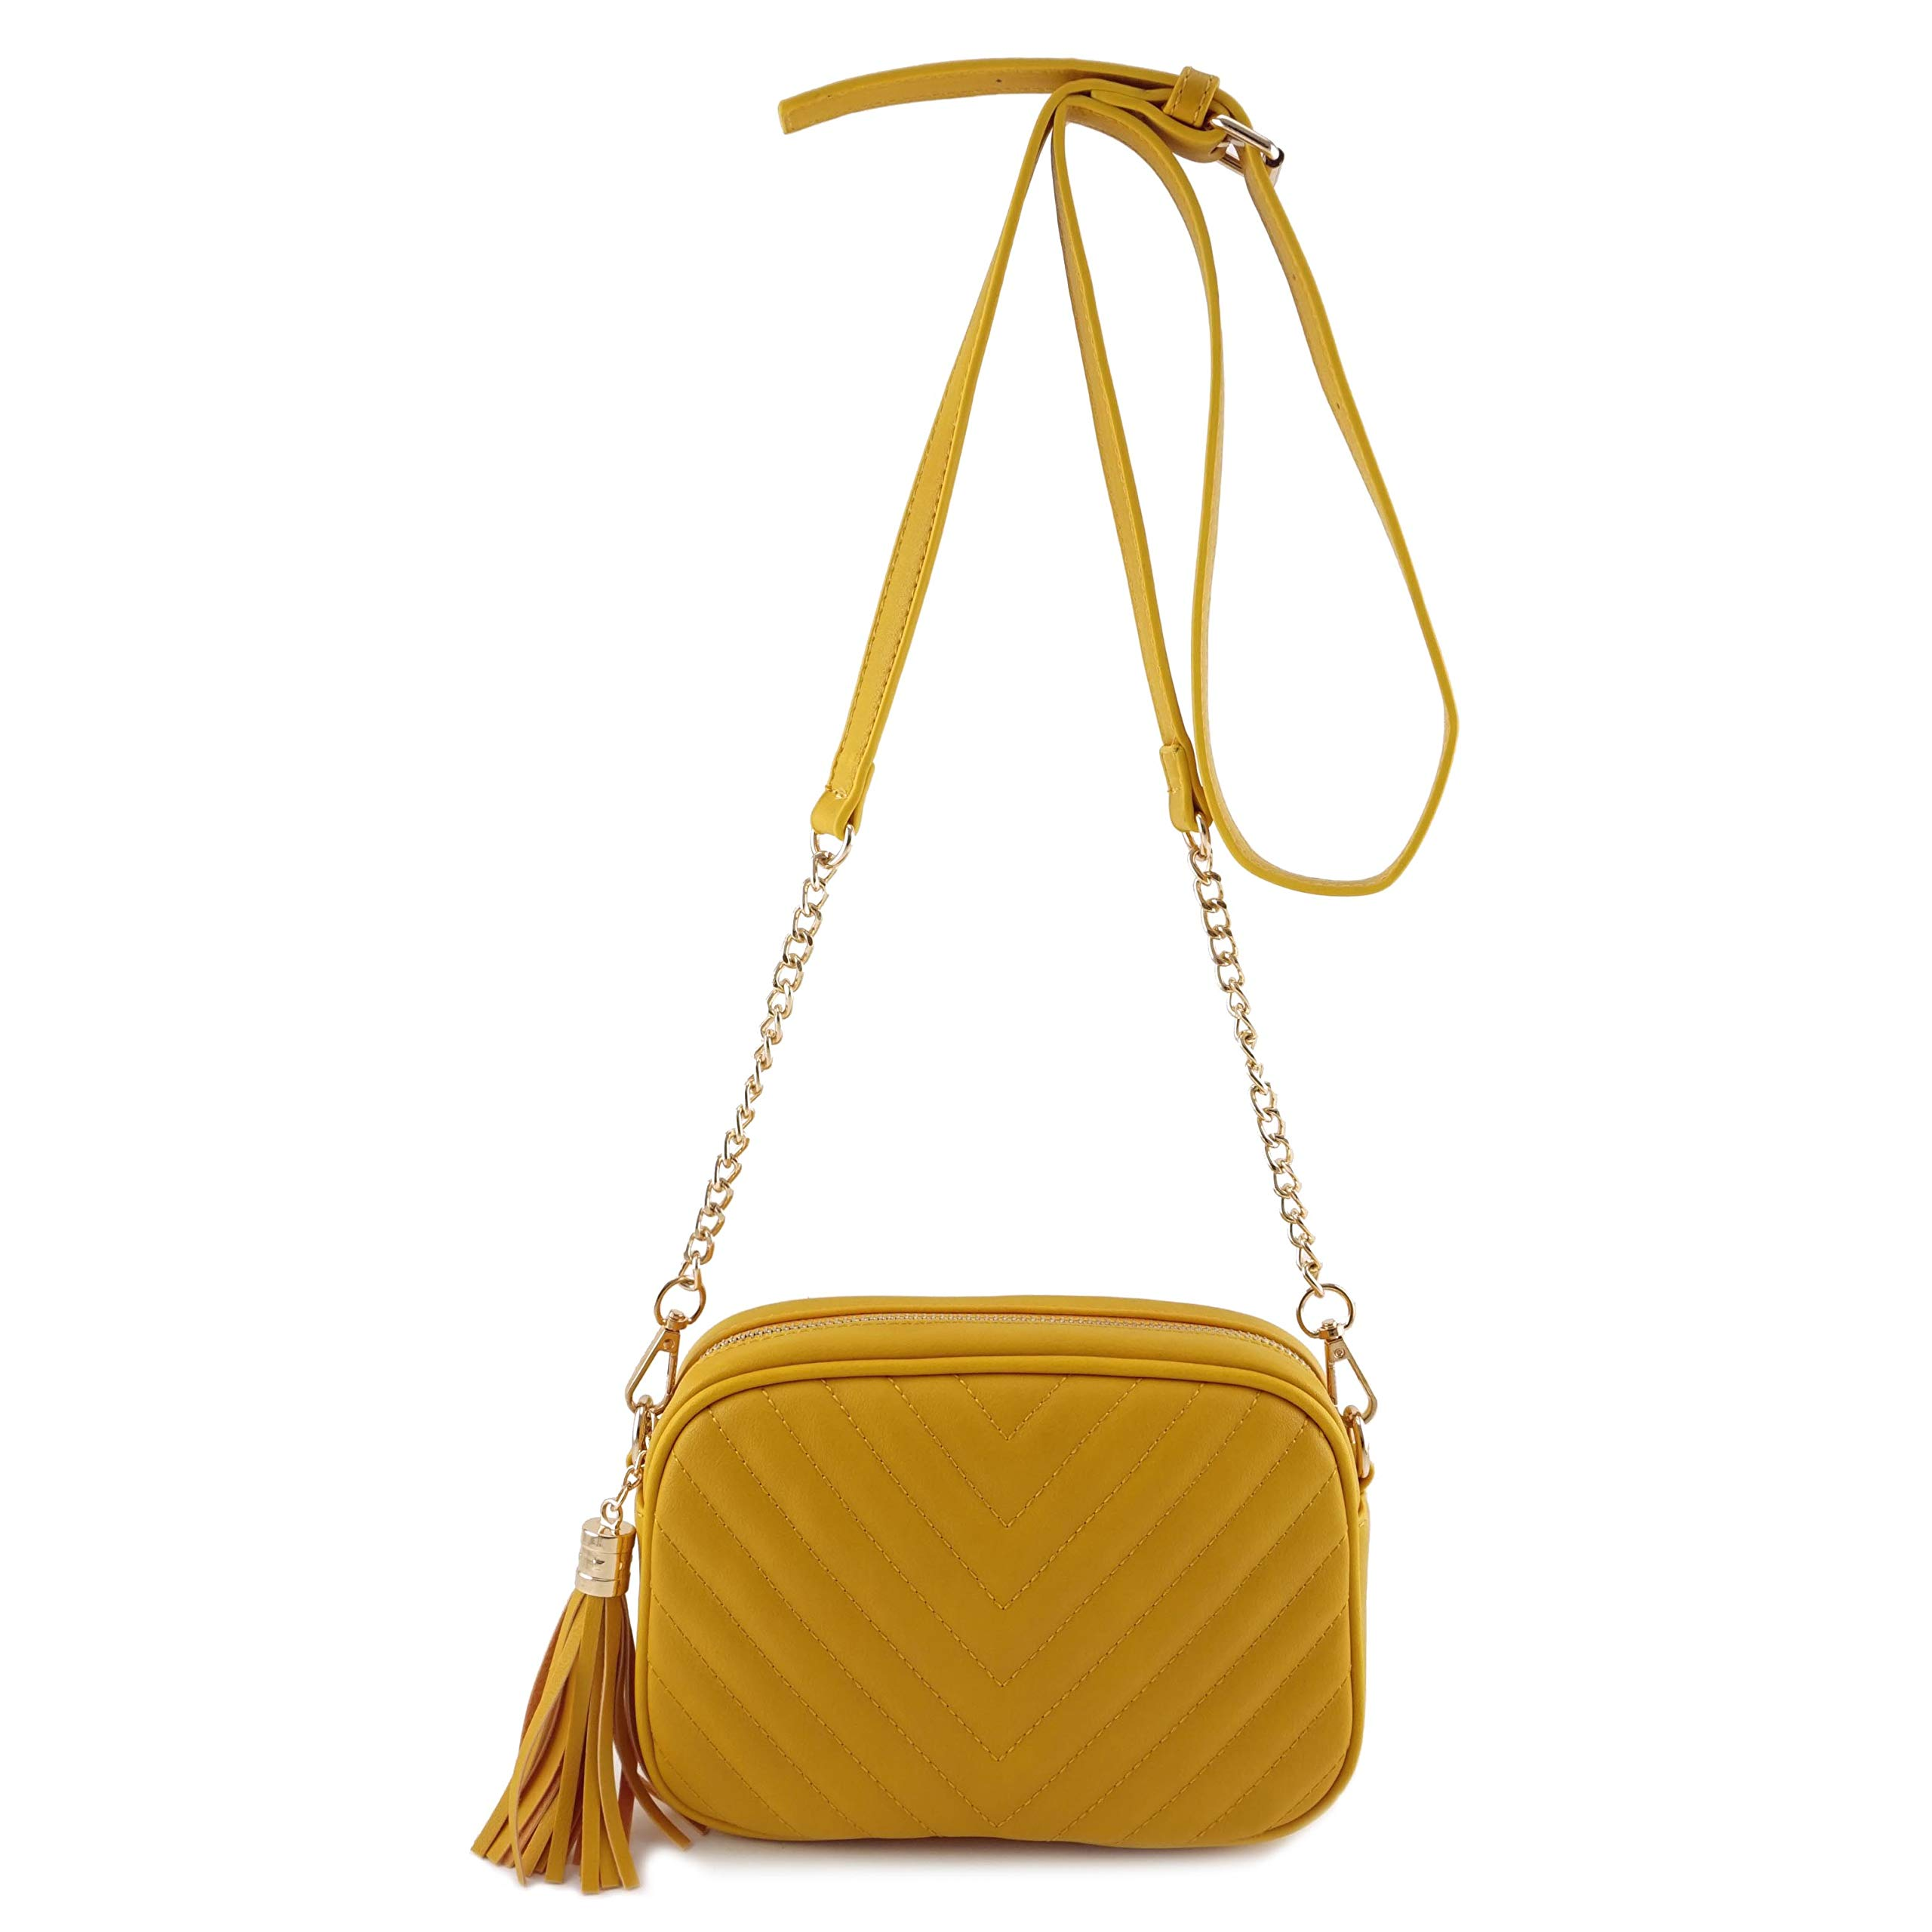 Simple Shoulder Crossbody Bag With Metal Chain Strap And Tassel Top Zipper (Mustard)